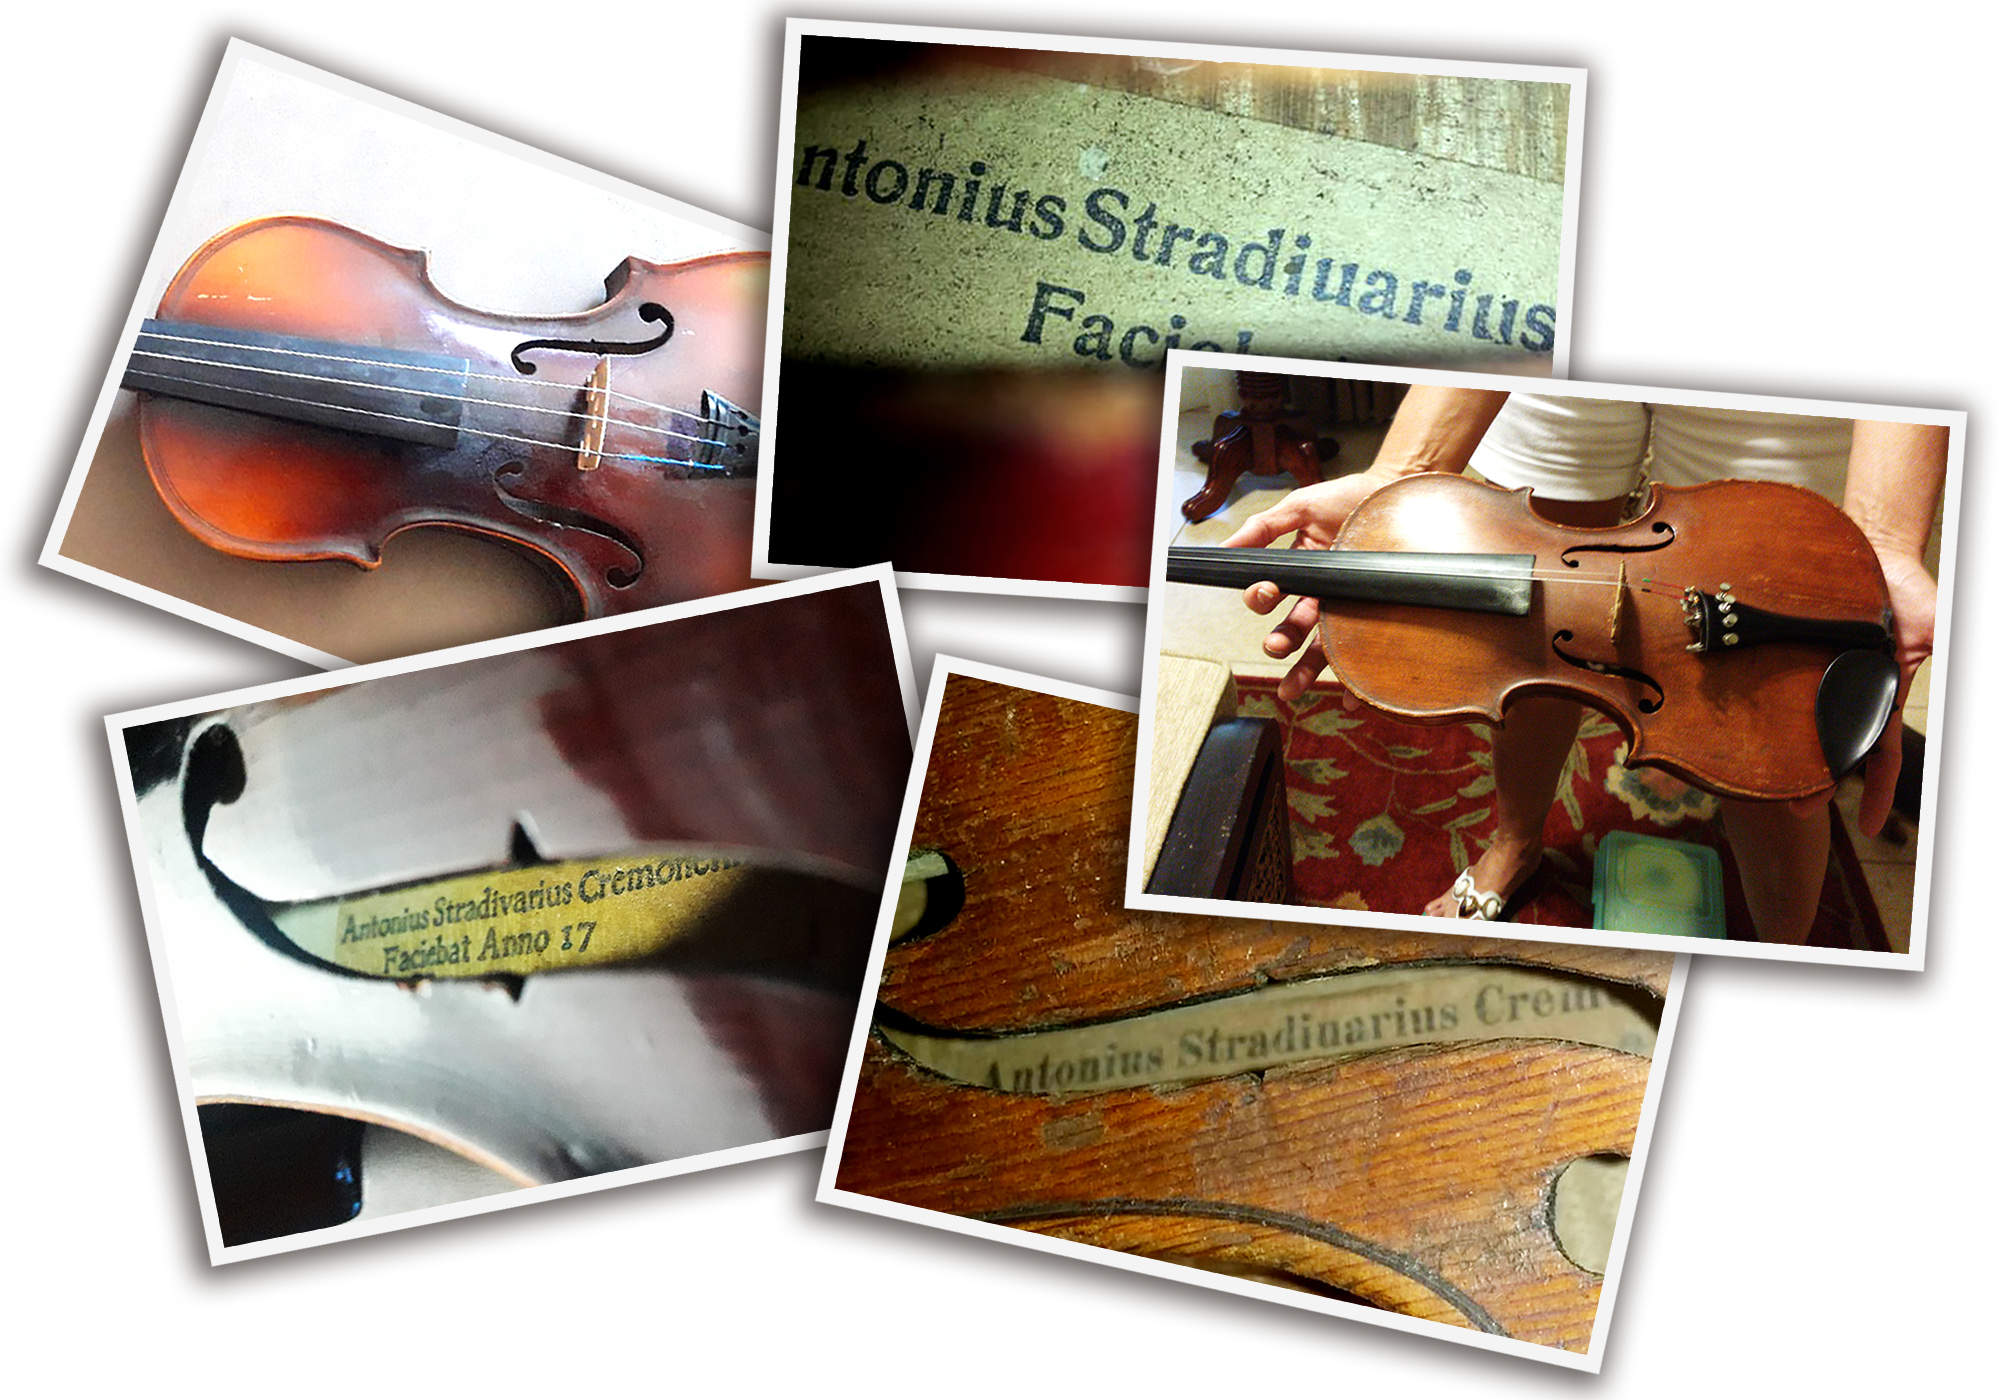 various photos of fake Strad violins spread out across each other